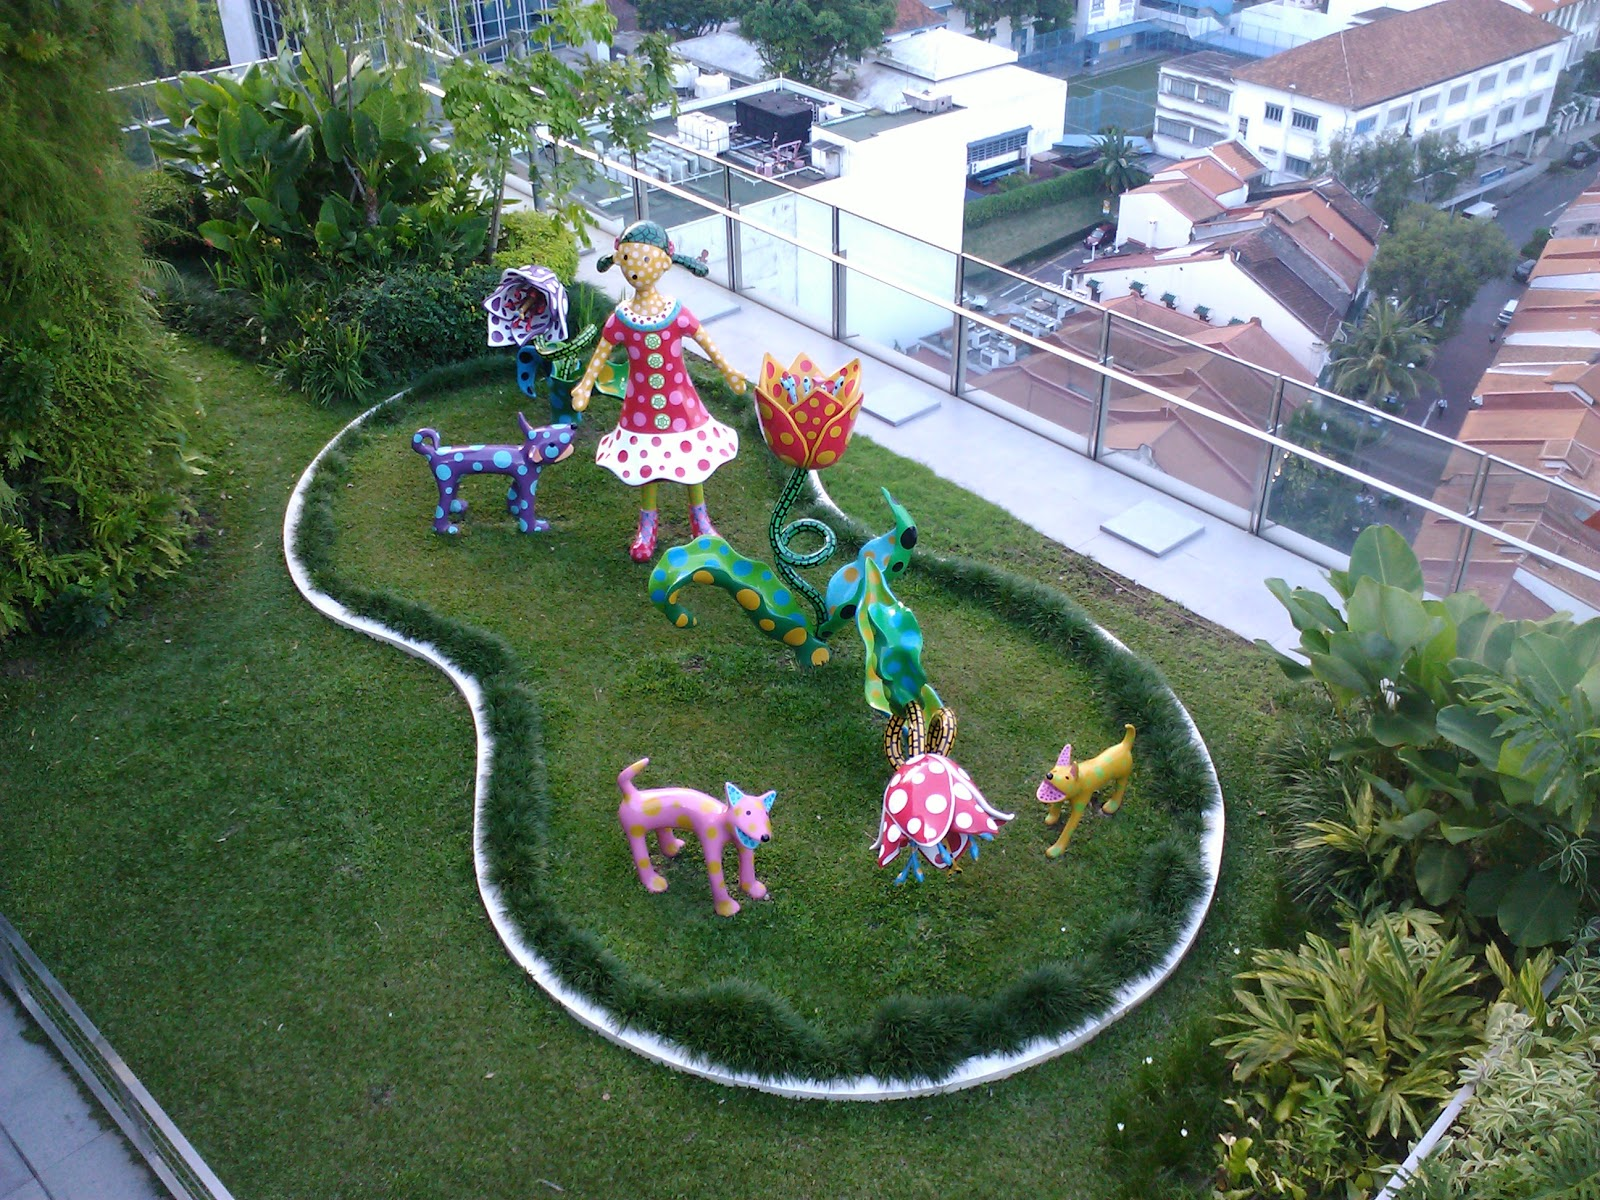 Frenzeelo: 6 Best Rooftop Gardens to Visit in Singapore ...